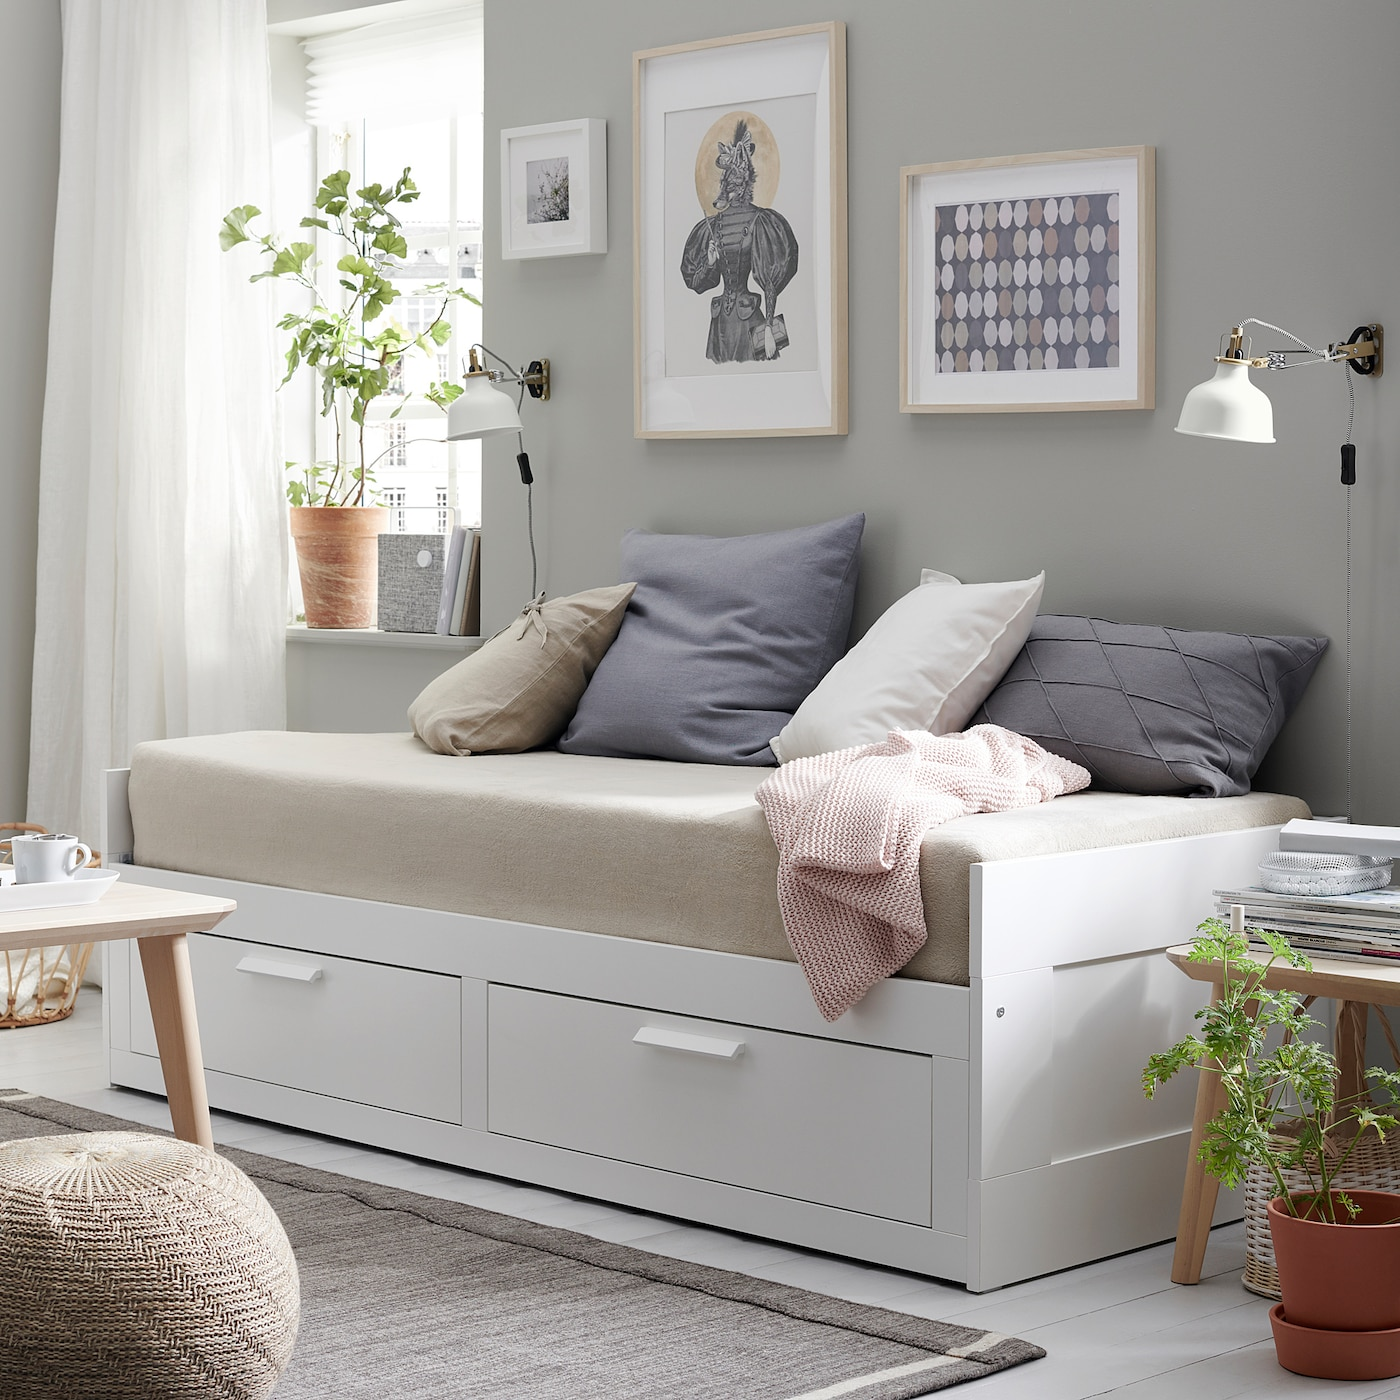 brimnes day bed frame with 2 drawers white 80 x 200 cm ikea 17810 | brimnes day bed frame with 2 drawers white 0734641 pe739552 s5